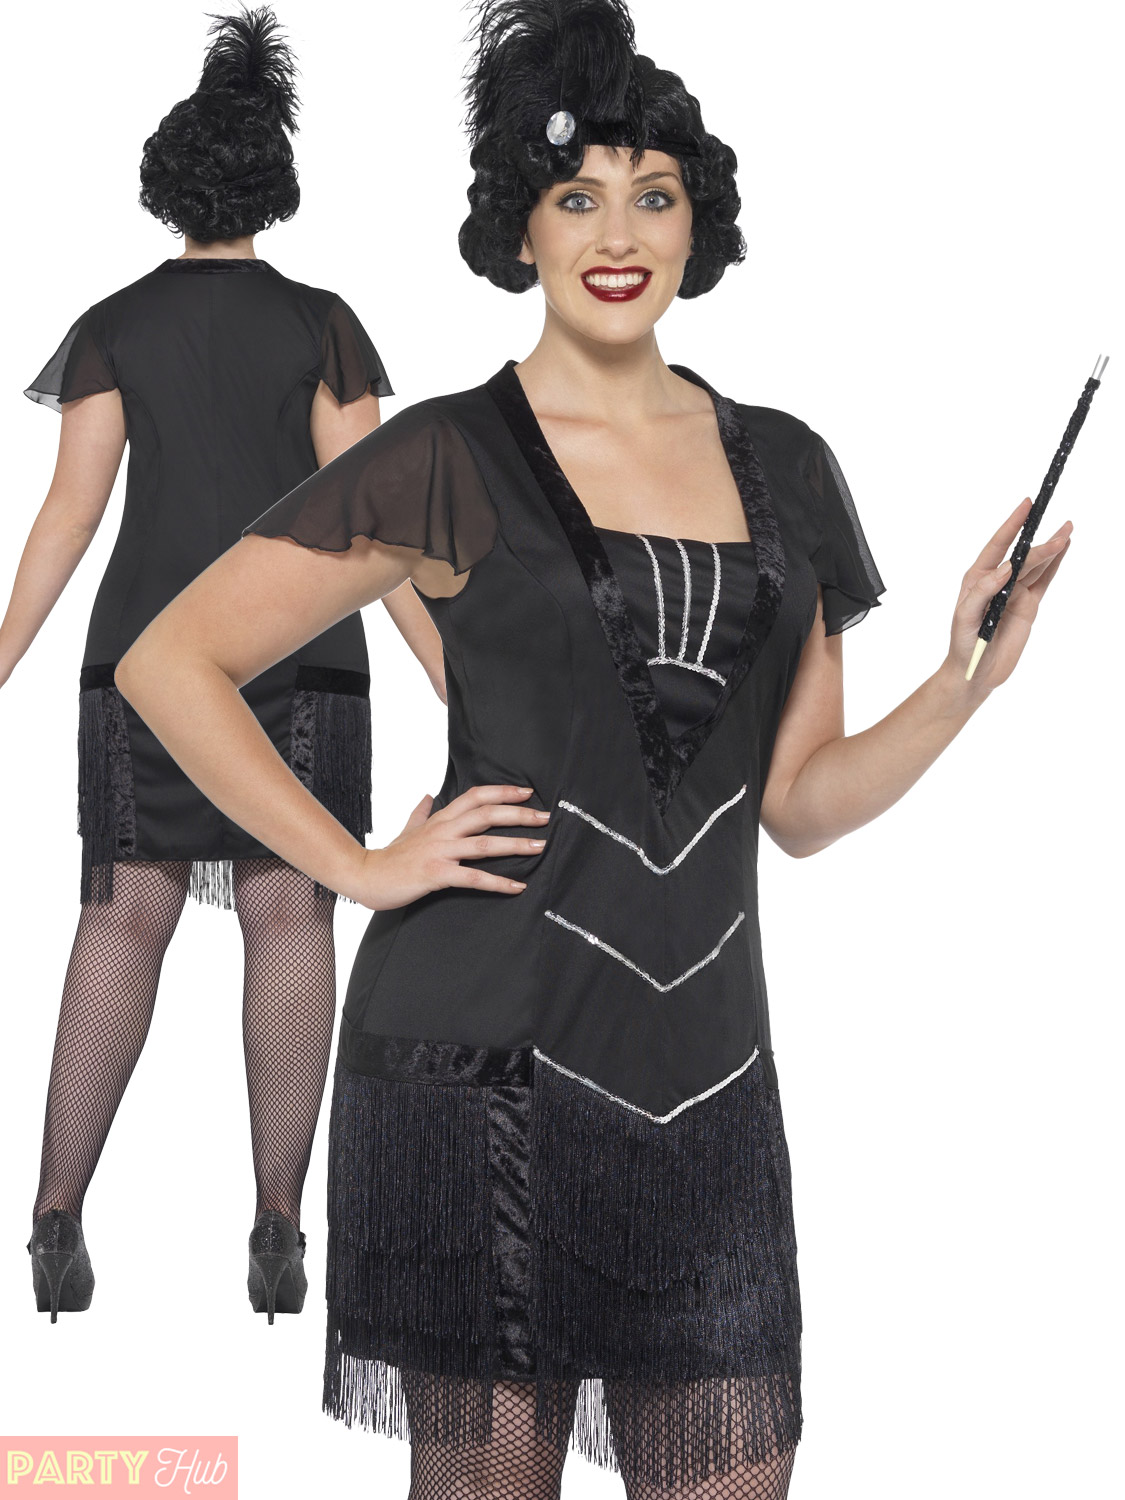 picture 2 of 5 - Size 26 Halloween Costumes